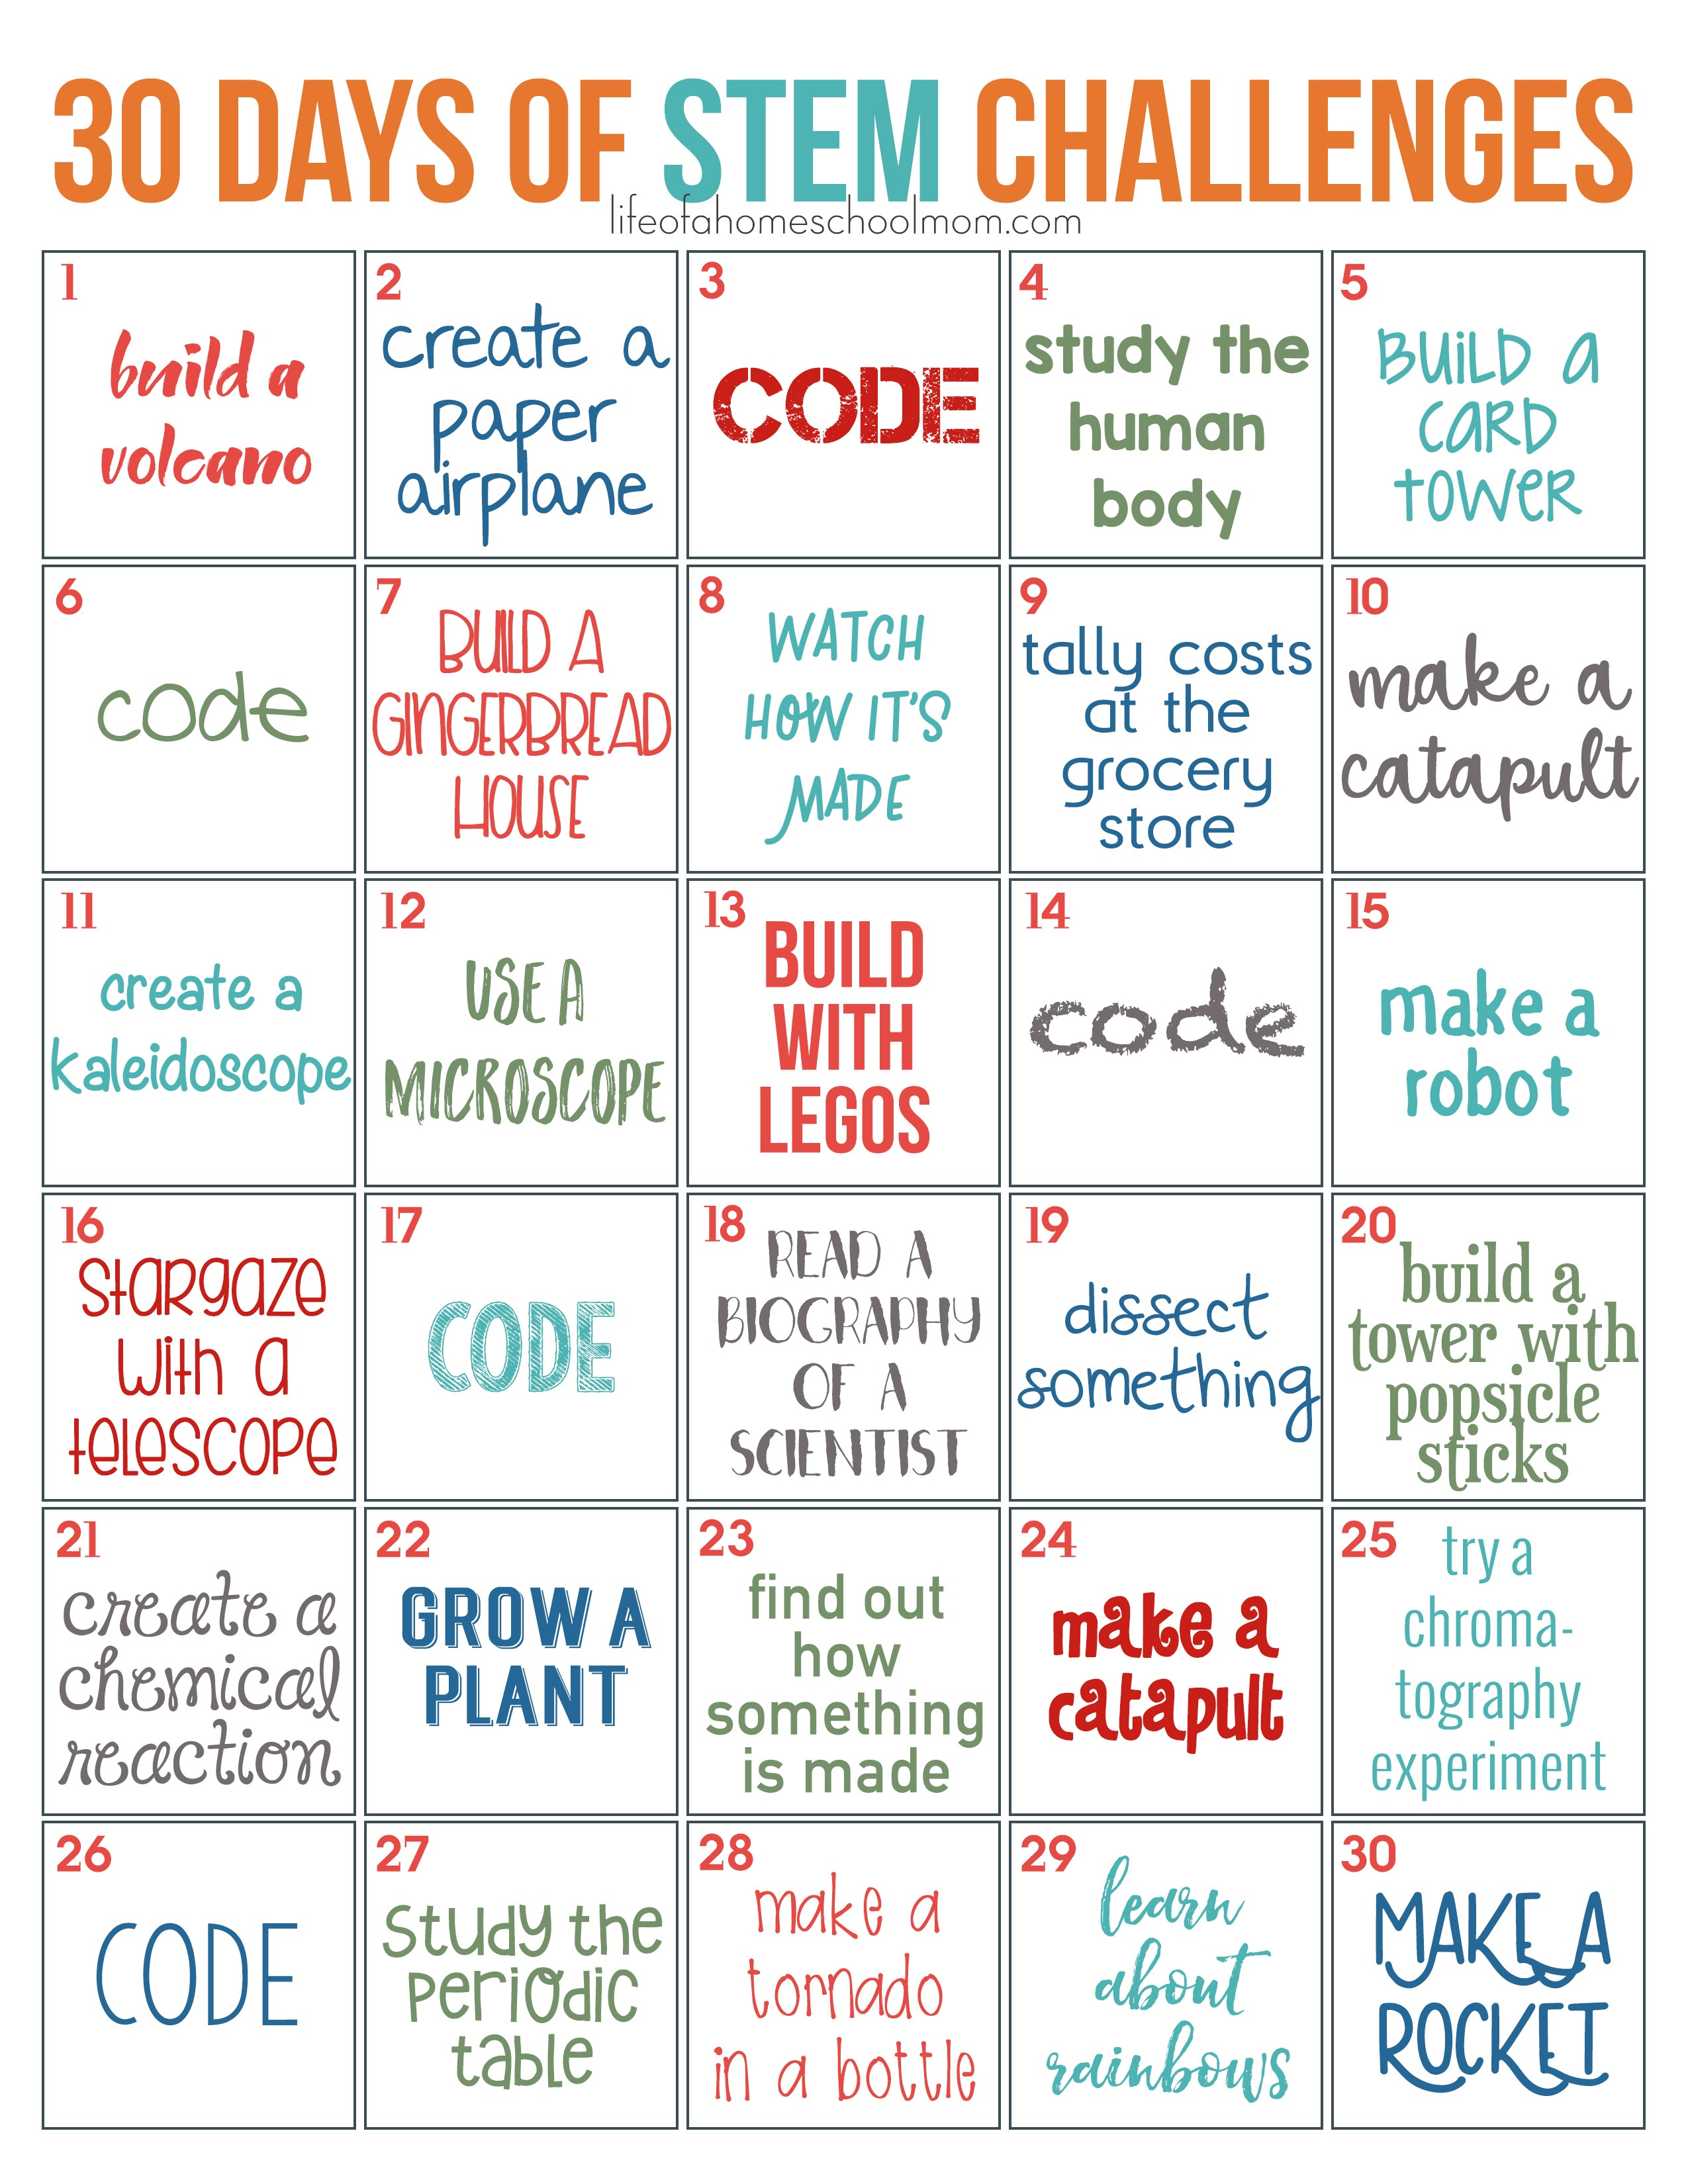 30 Days Of Stem Challenges - Free Printable! - Life Of A Homeschool Mom - Free Printable Stem Activities